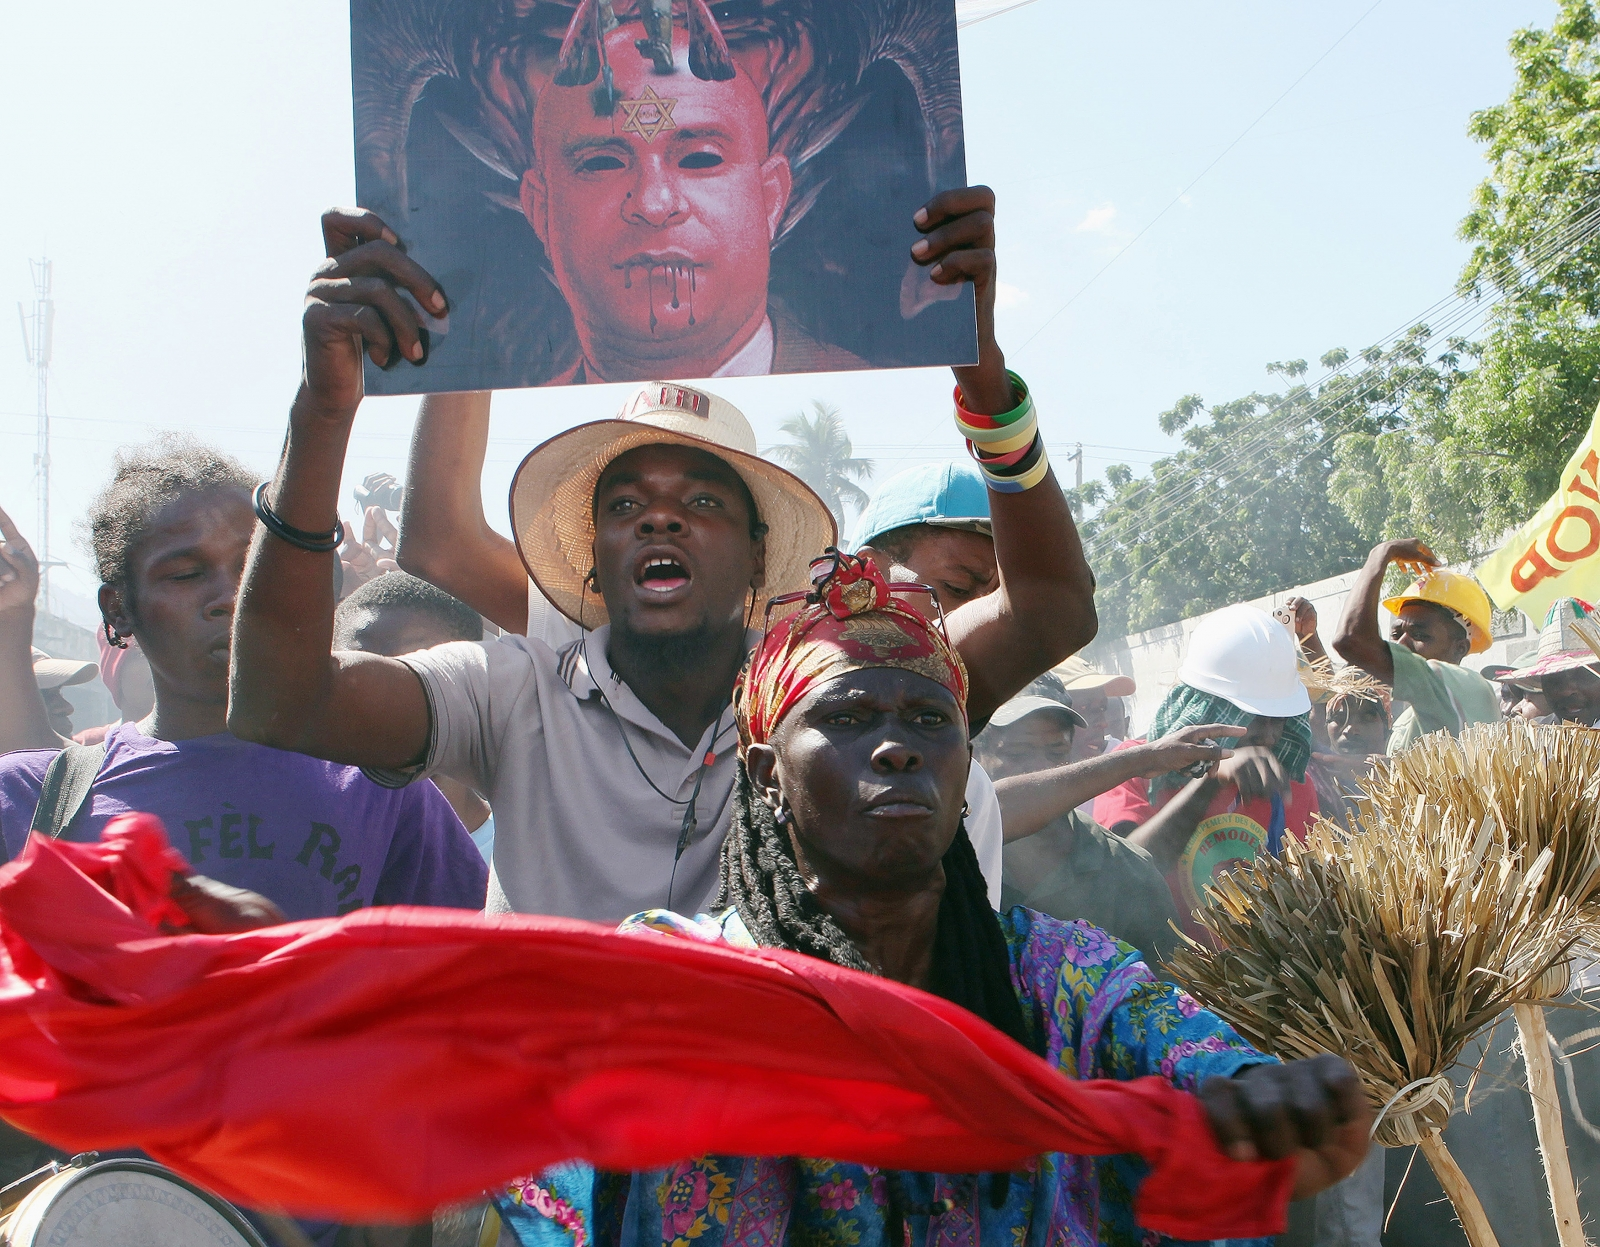 Protesters in Haiti